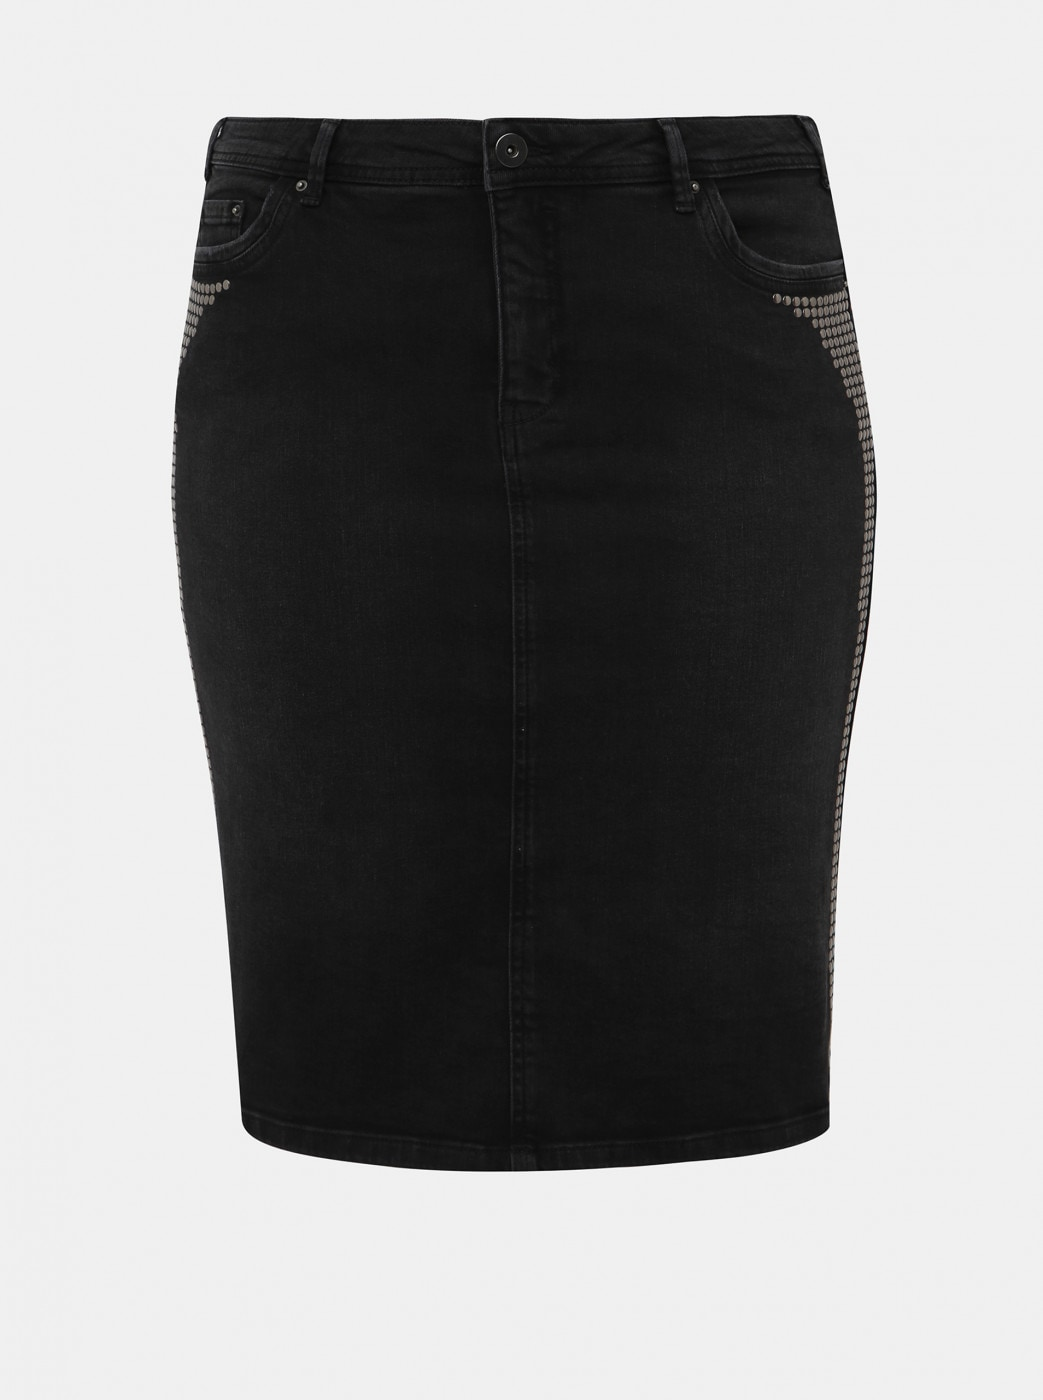 Zizzi Minsk Dark Grey Denim Pencil Skirt